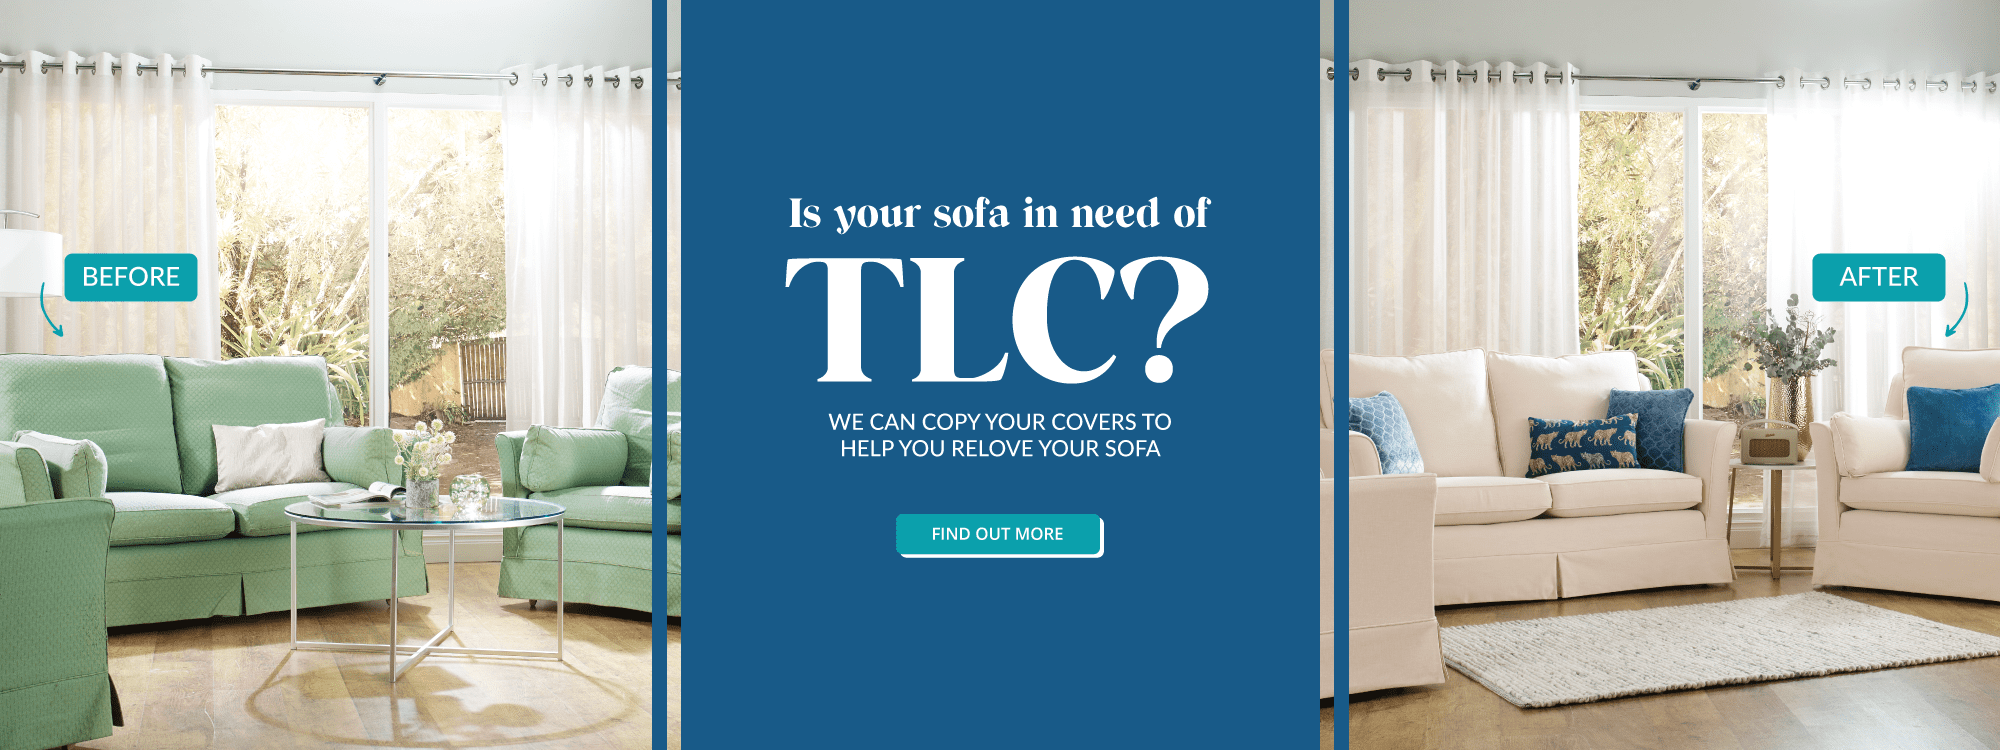 Is your sofa in need of TLC?